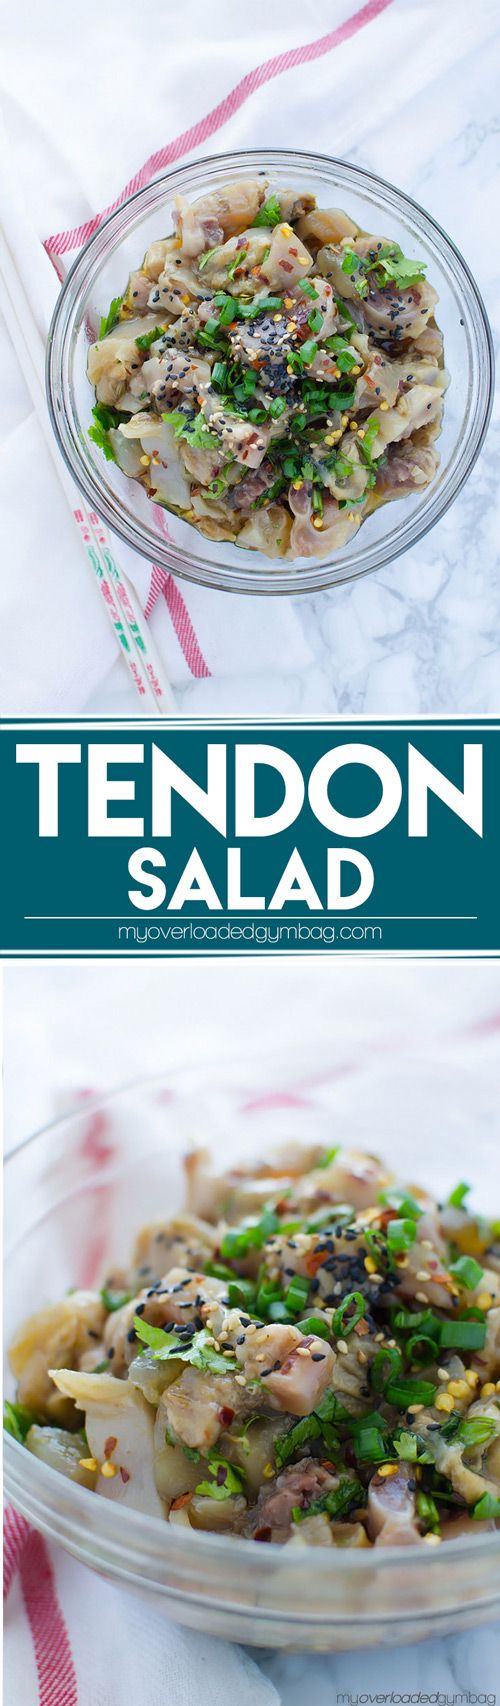 Low FODMAP, gluten free. A nutritious, protein-rich salad, that will help keep you looking youthful. | myoverloadedgymbag.com